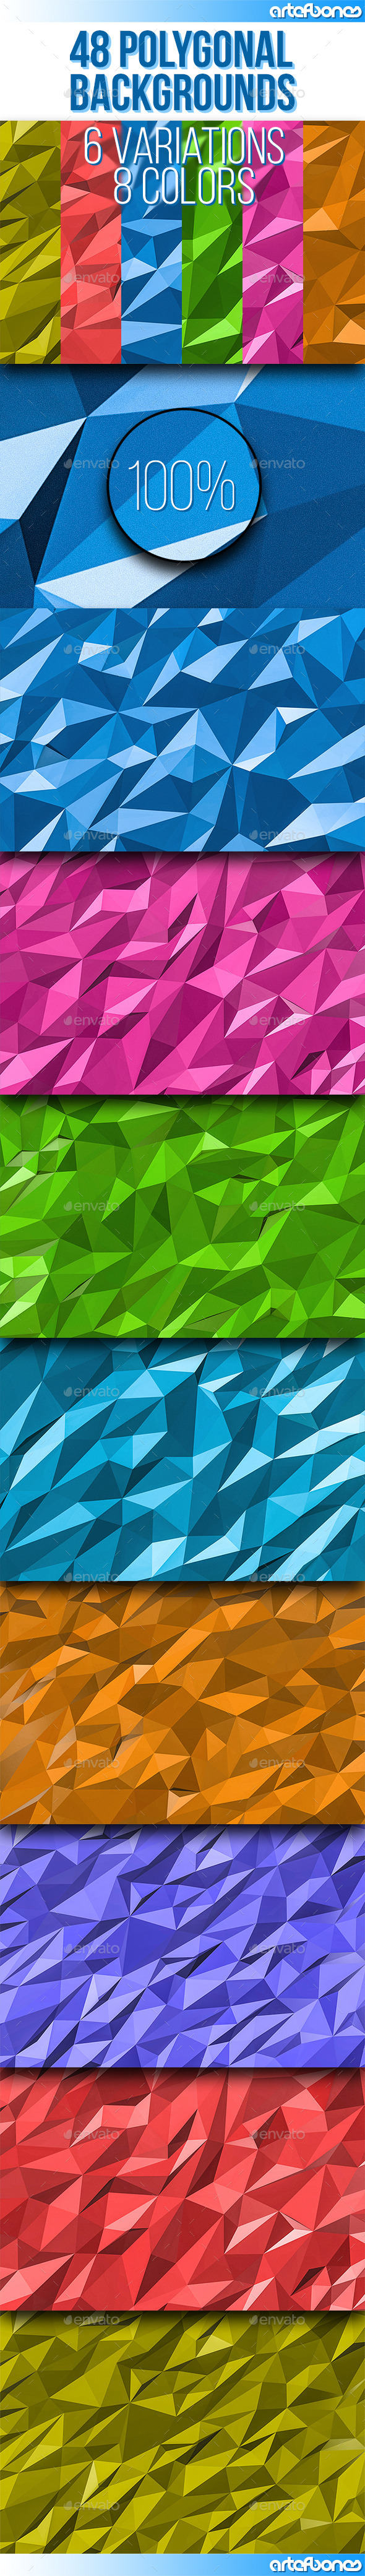 GraphicRiver 48 Polygonal Backgrounds Vol.3 9476221